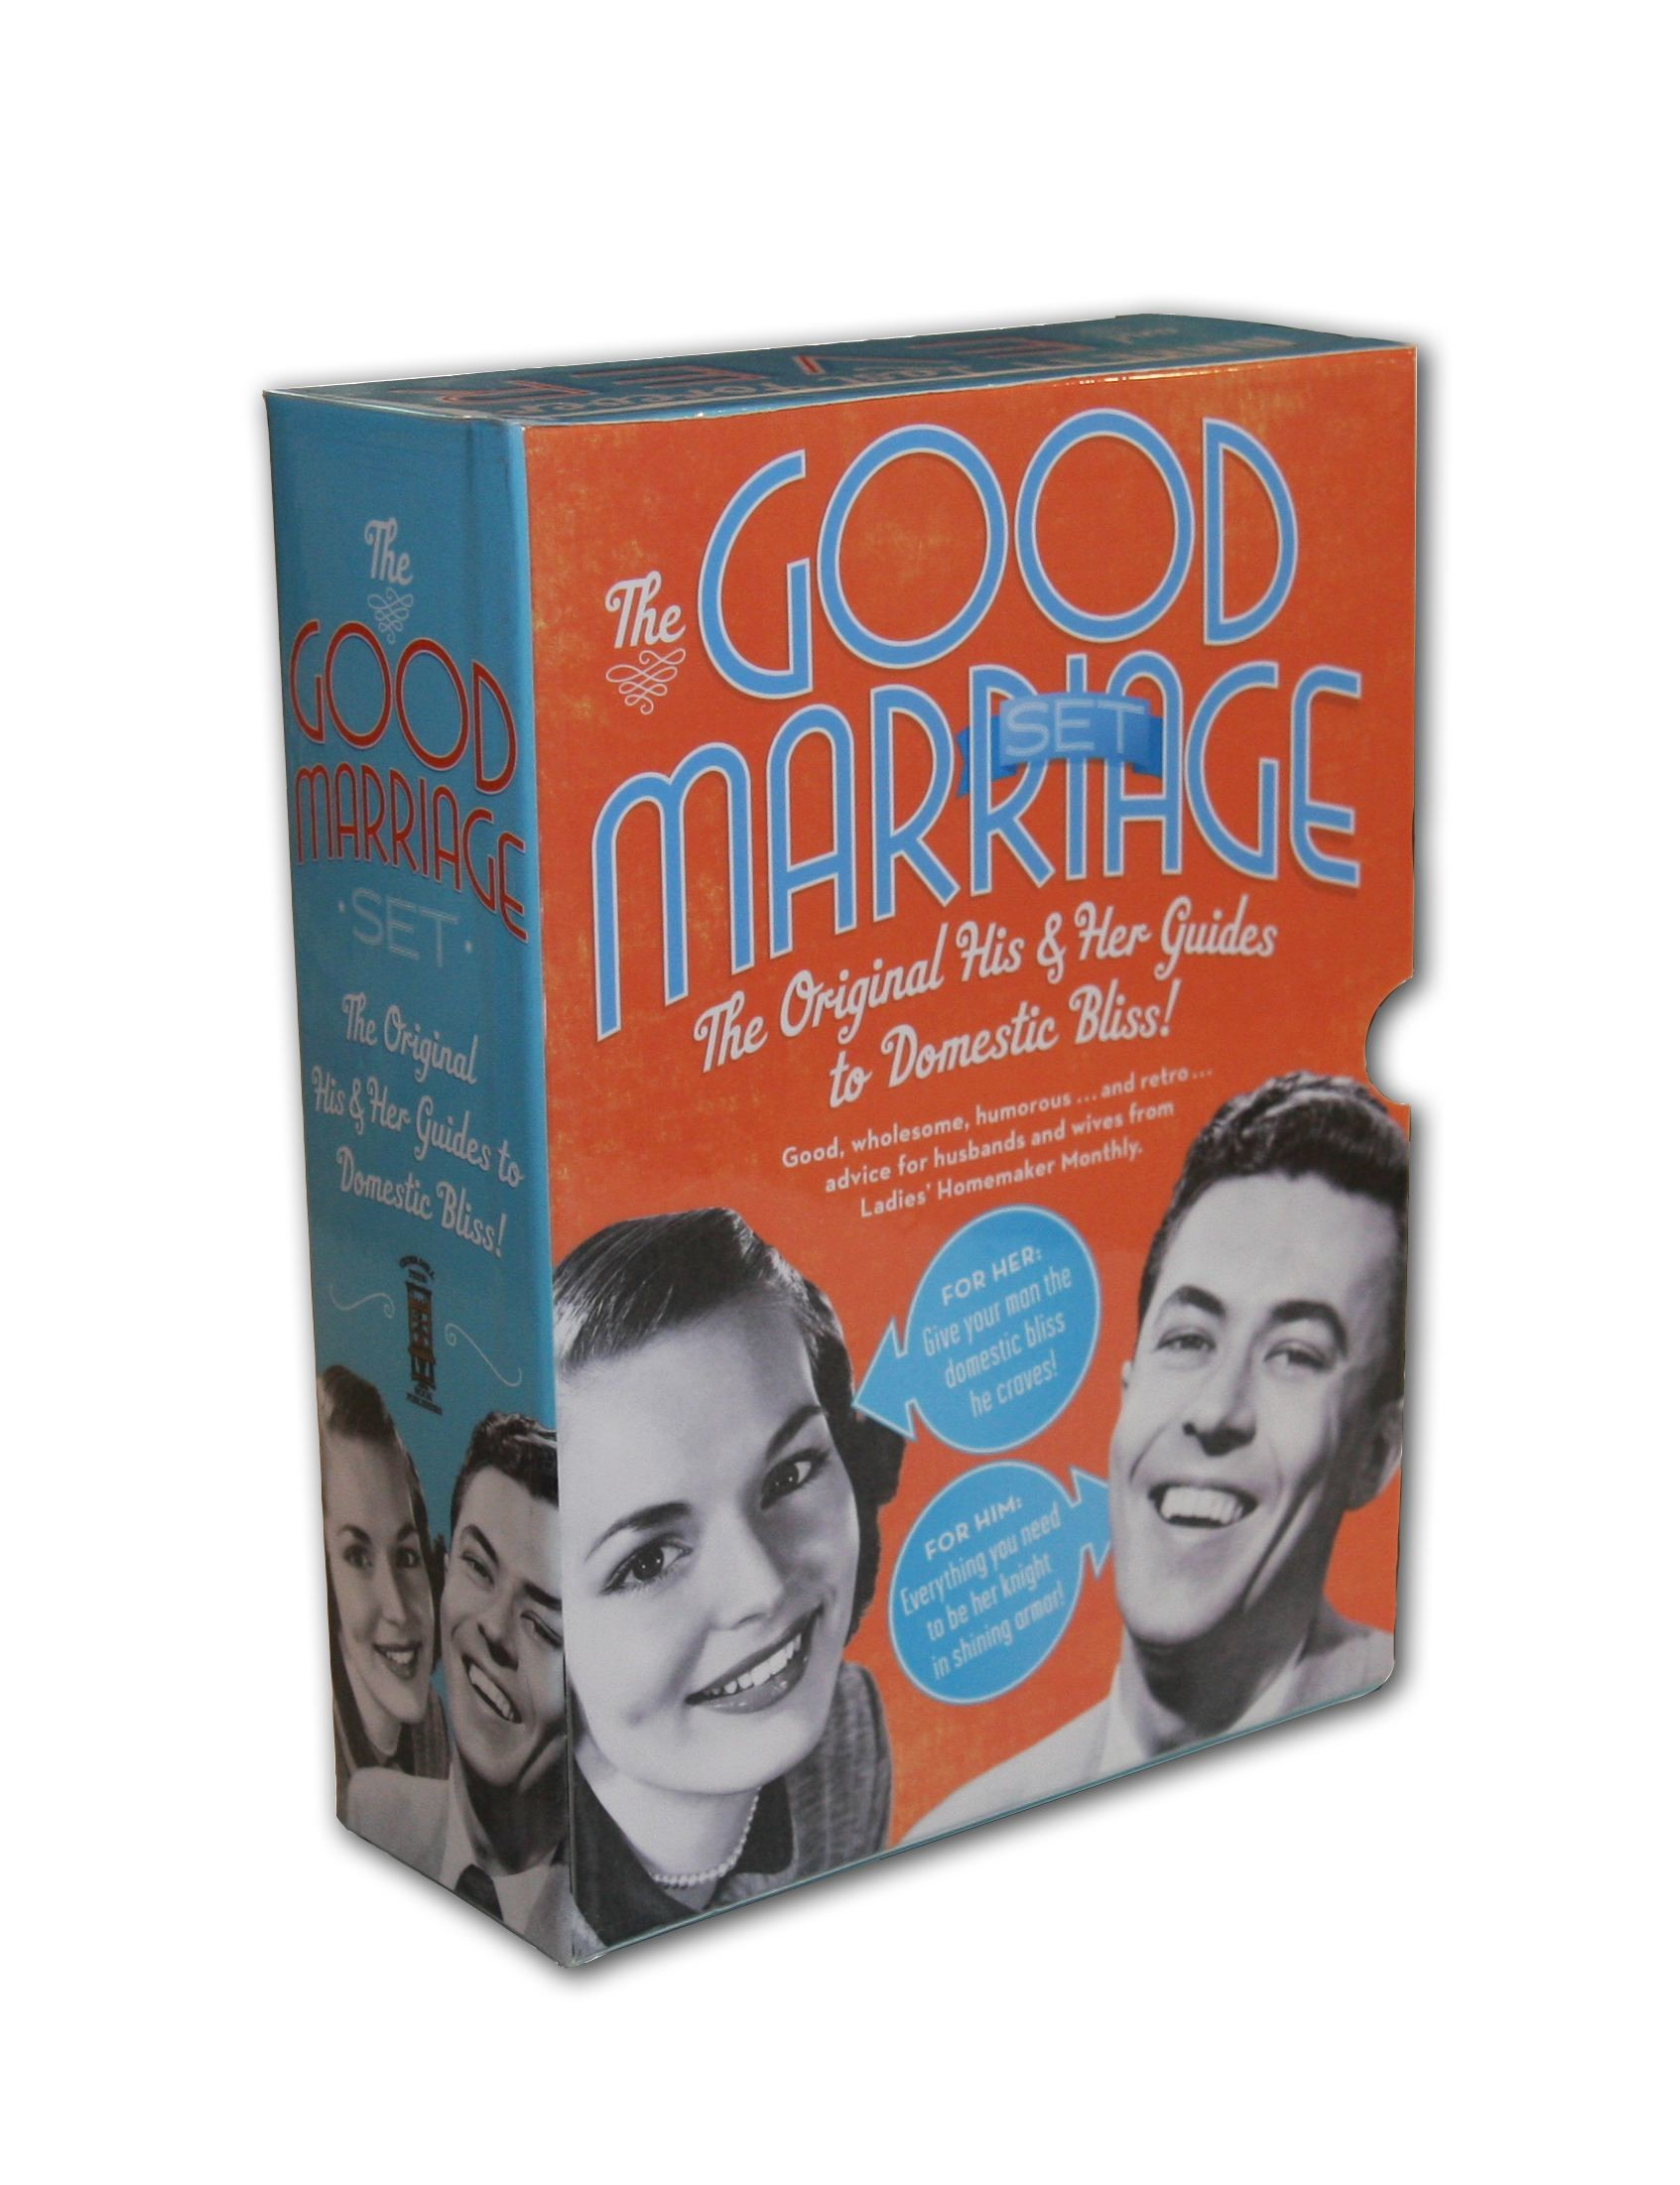 The good marriage guides slipcase 9781604332070.in01